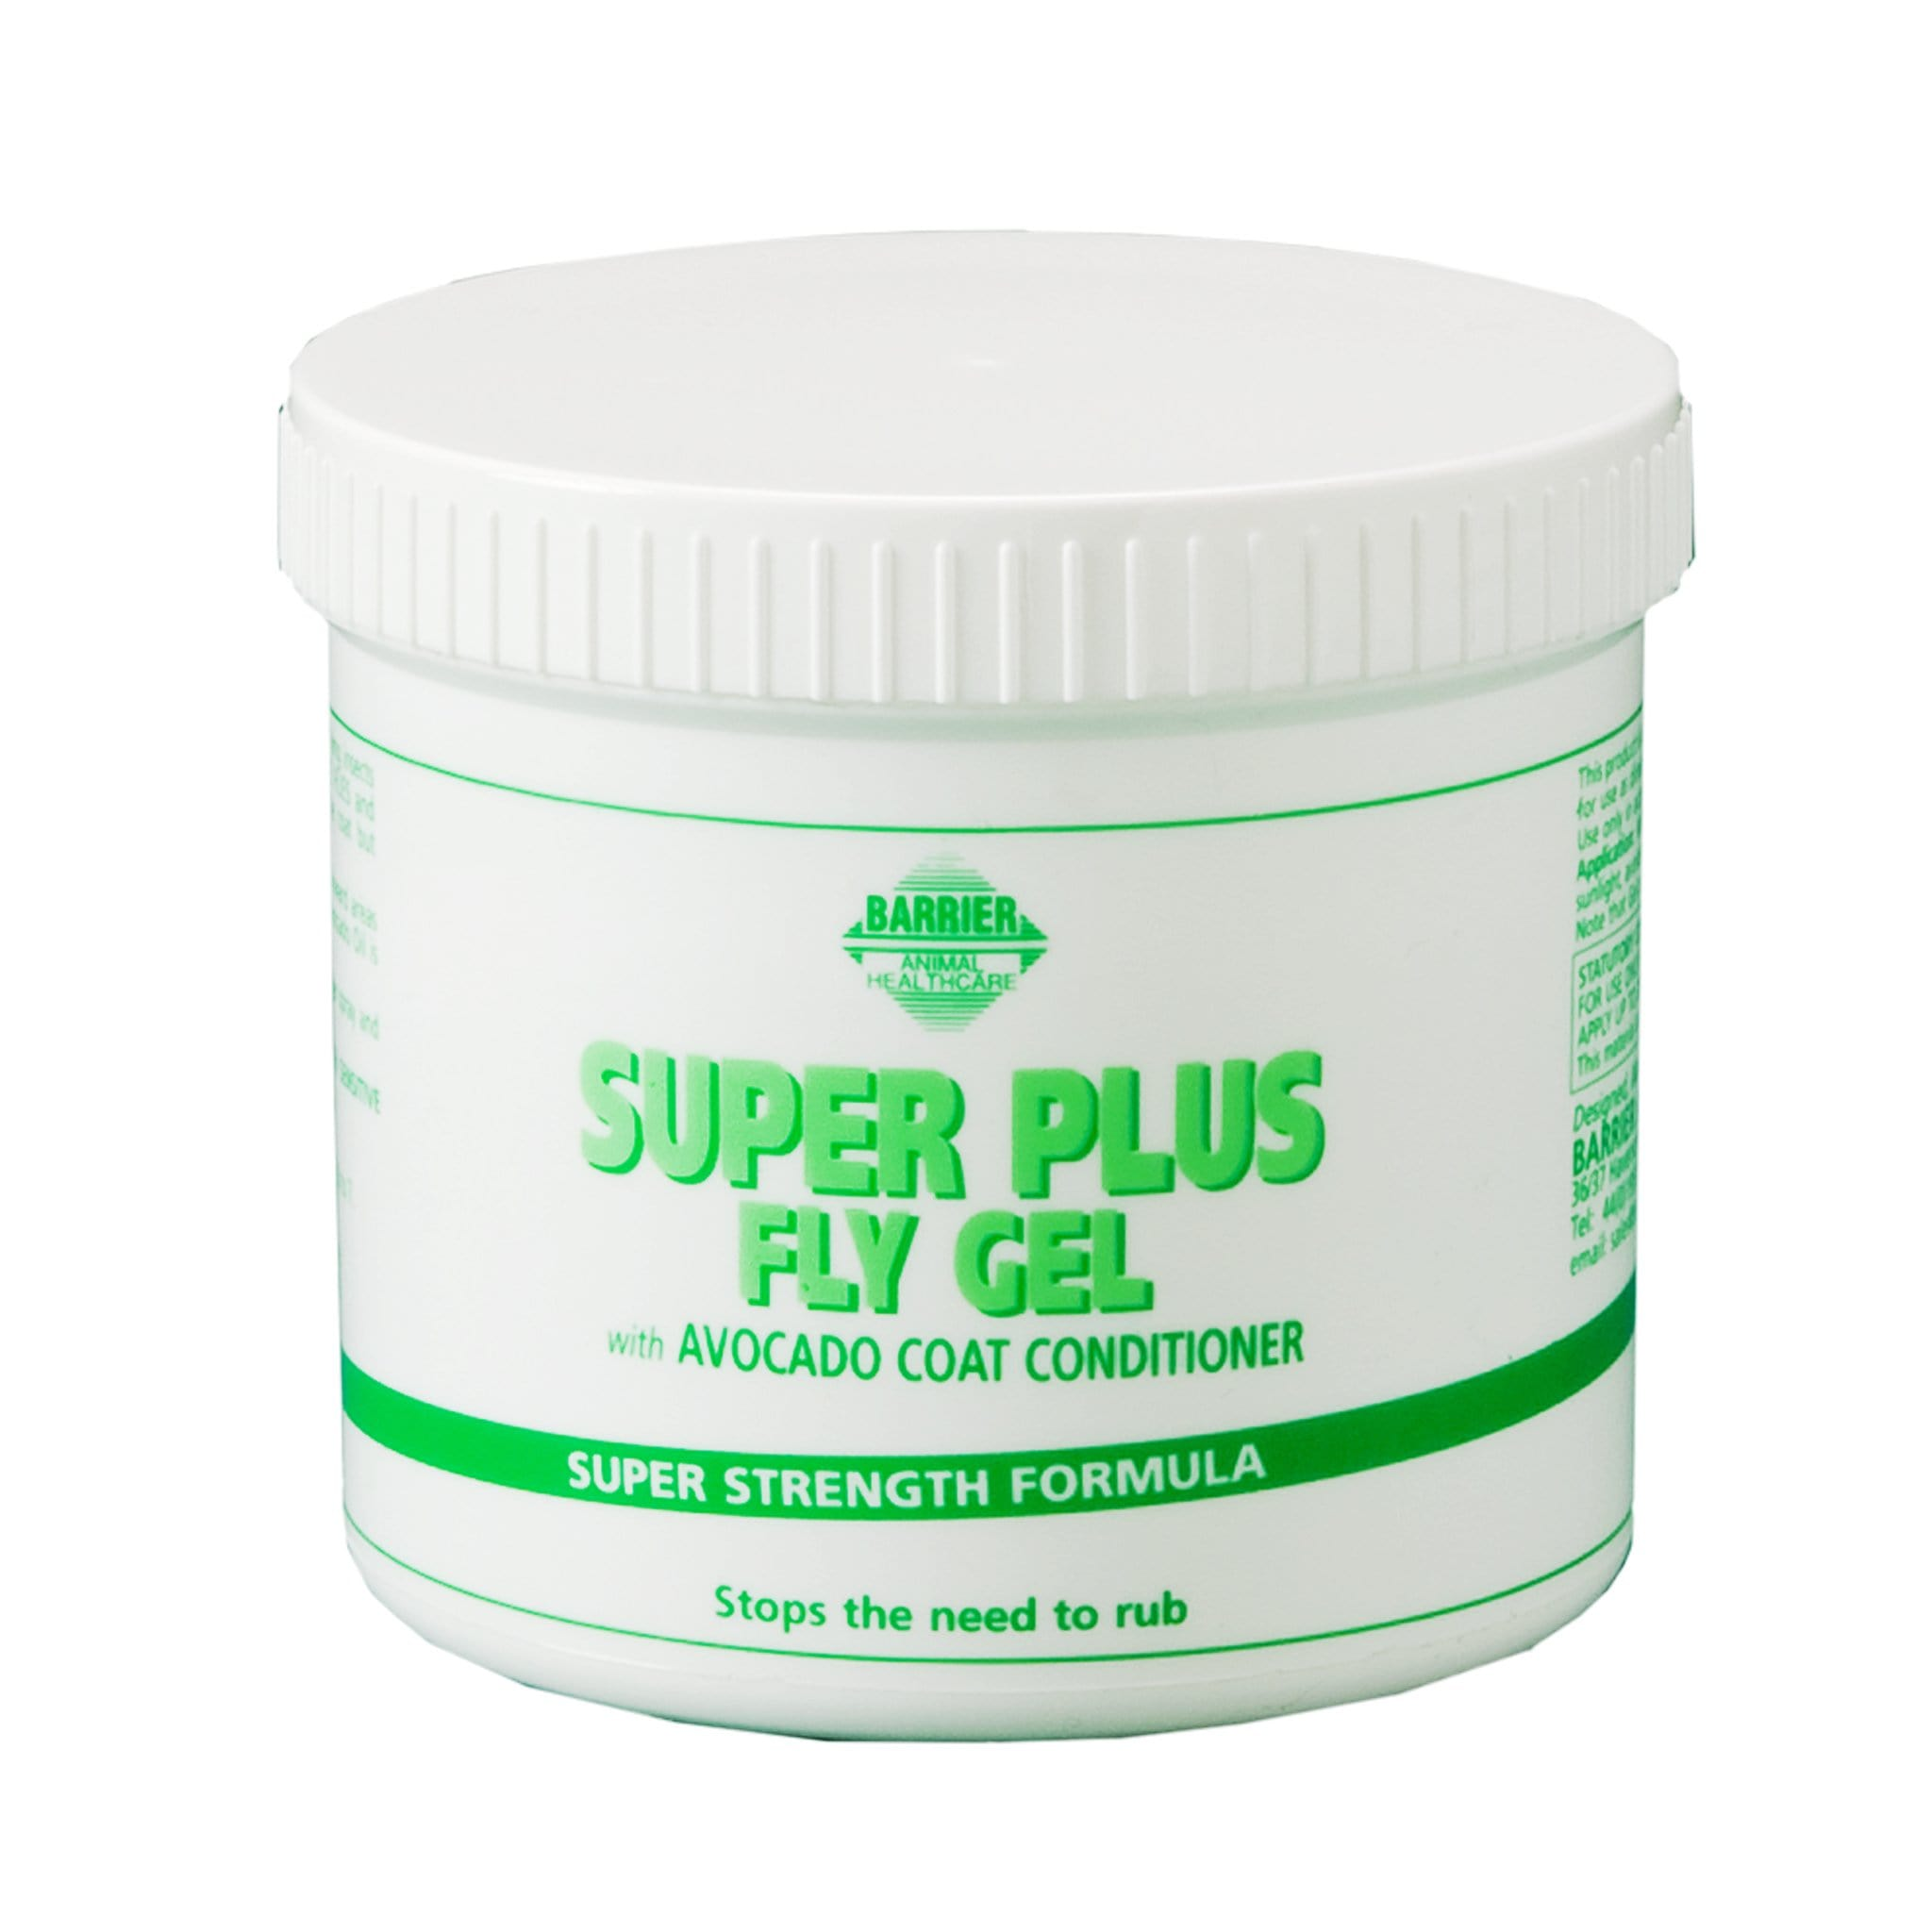 Barrier Super Plus Fly Gel 8465